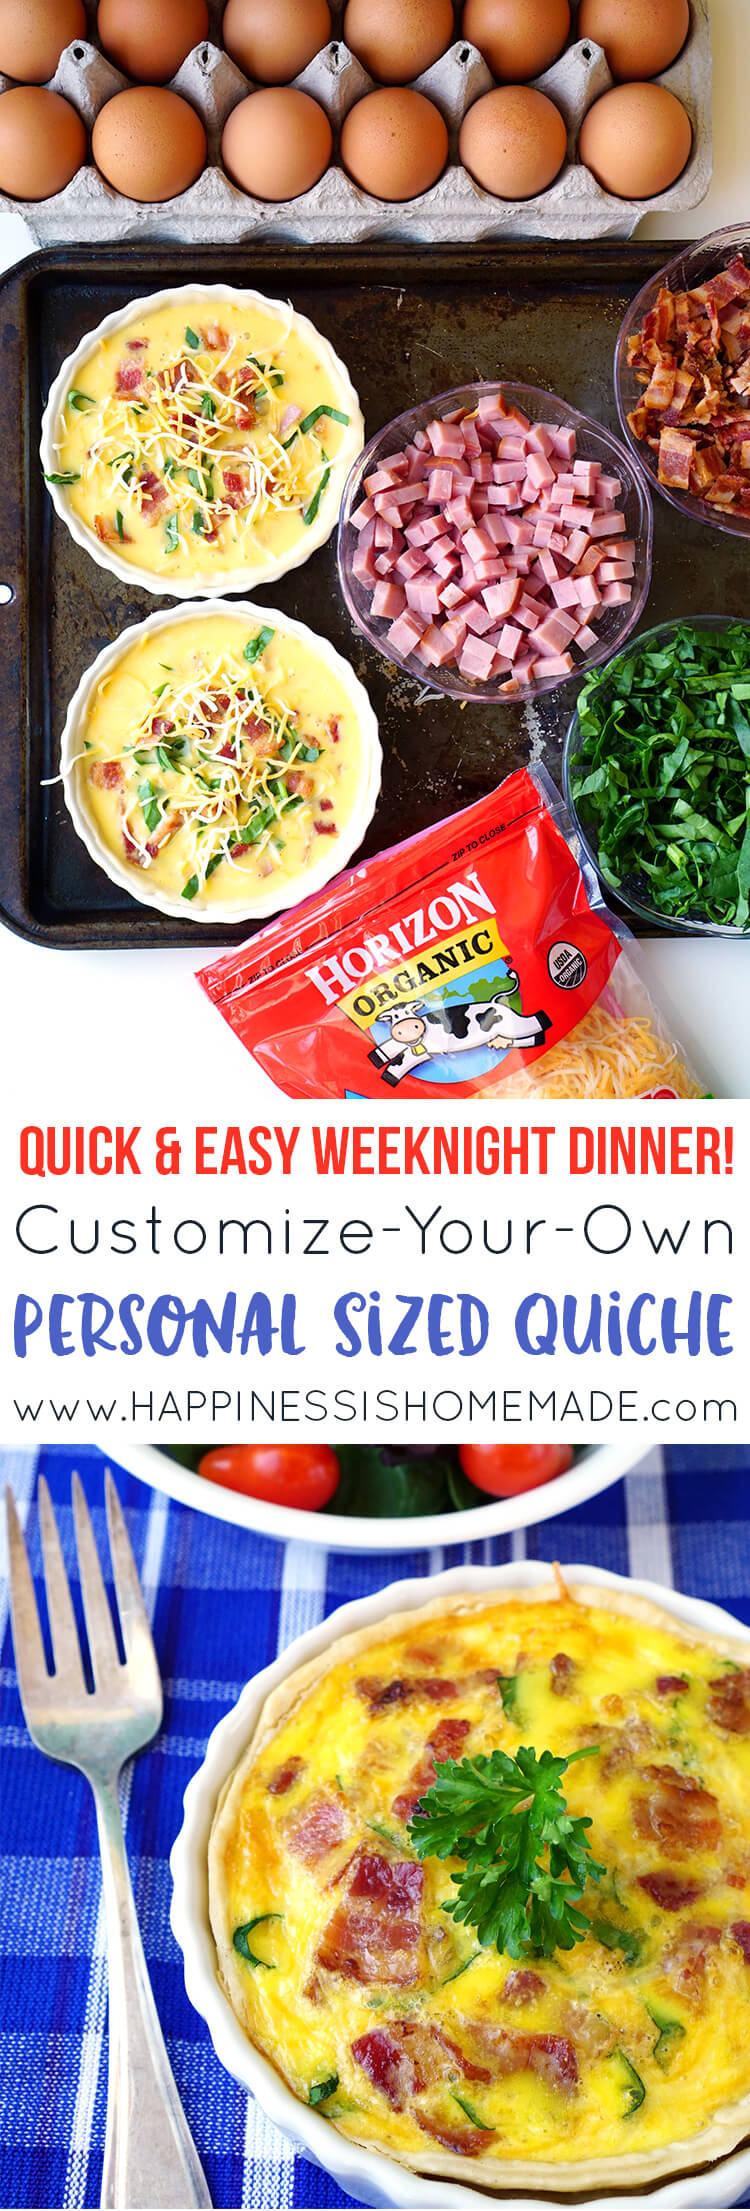 customize-your-own-quiche-for-a-quick-and-easy-weeknight-dinner